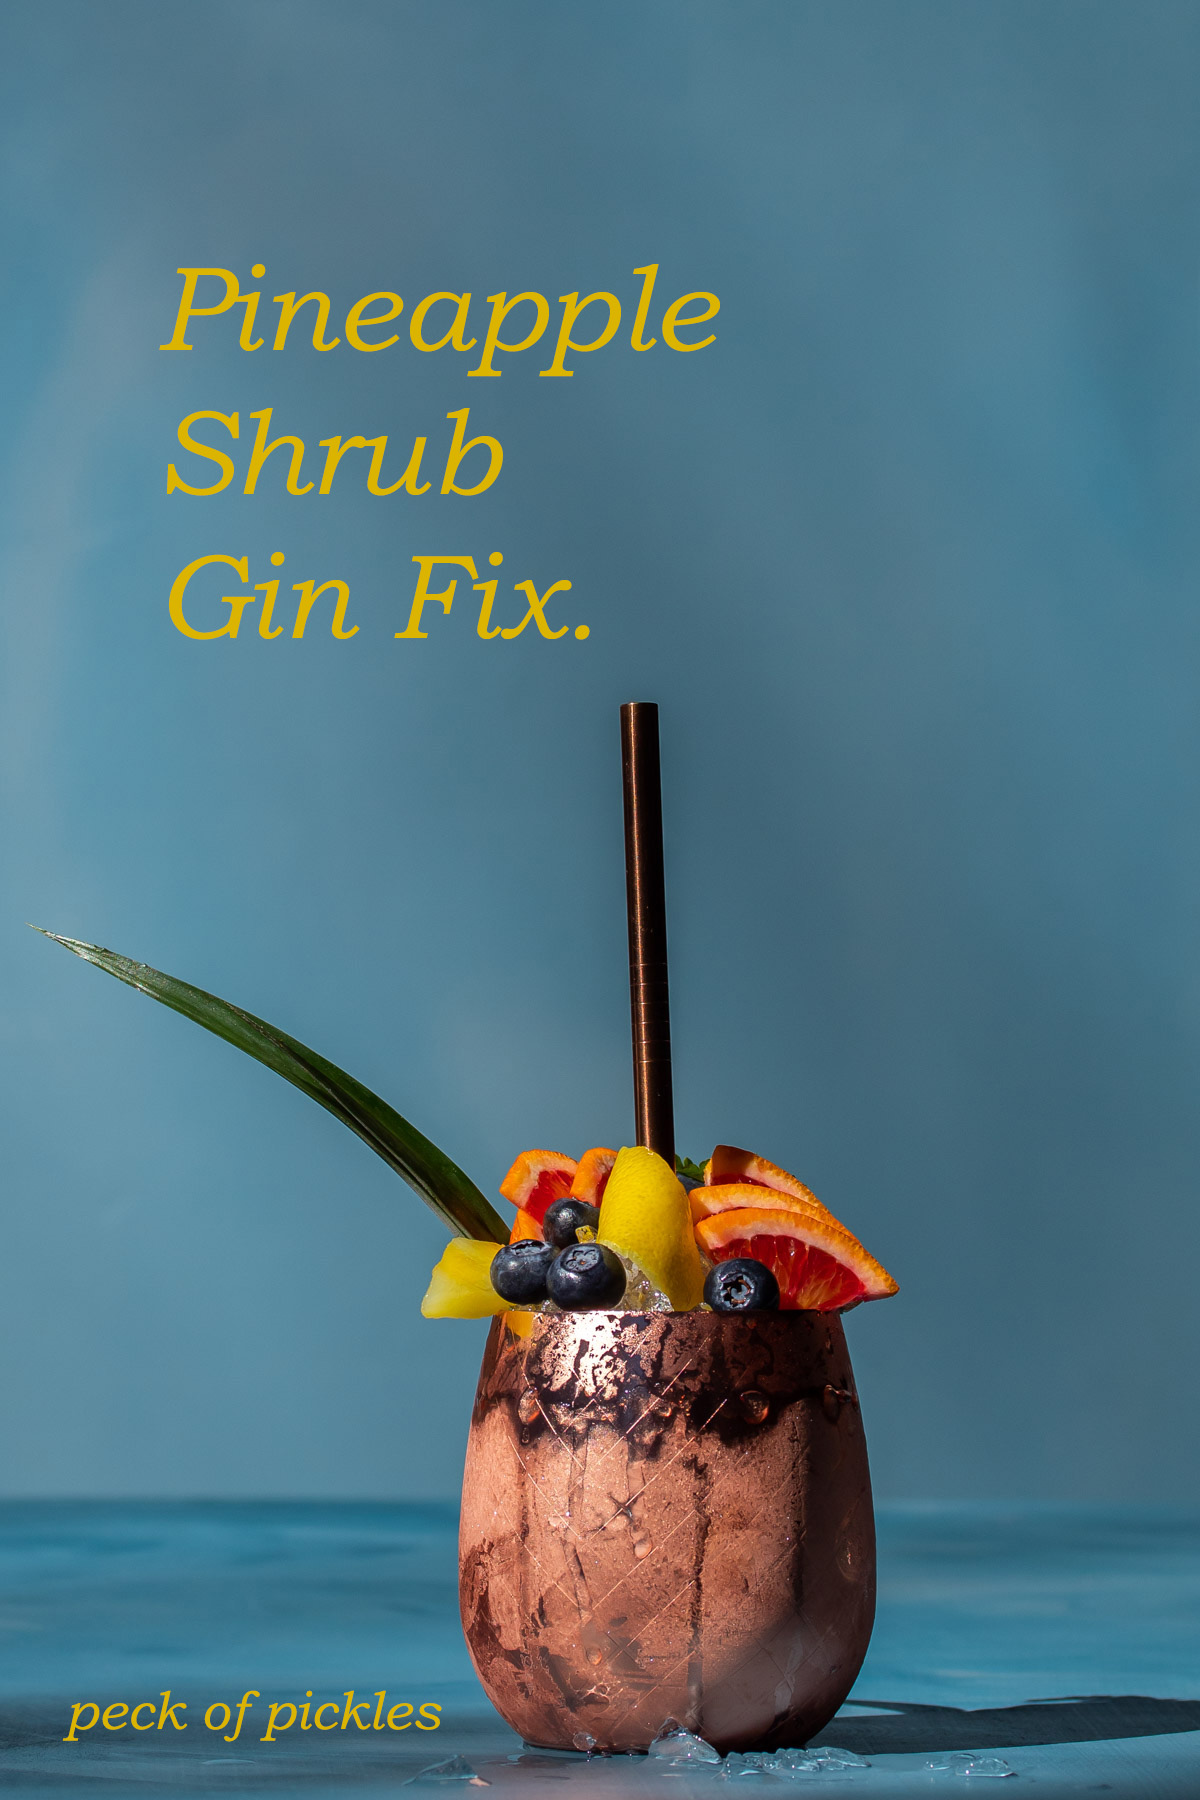 pineapple shrub gin fix cocktail isolated on blue background